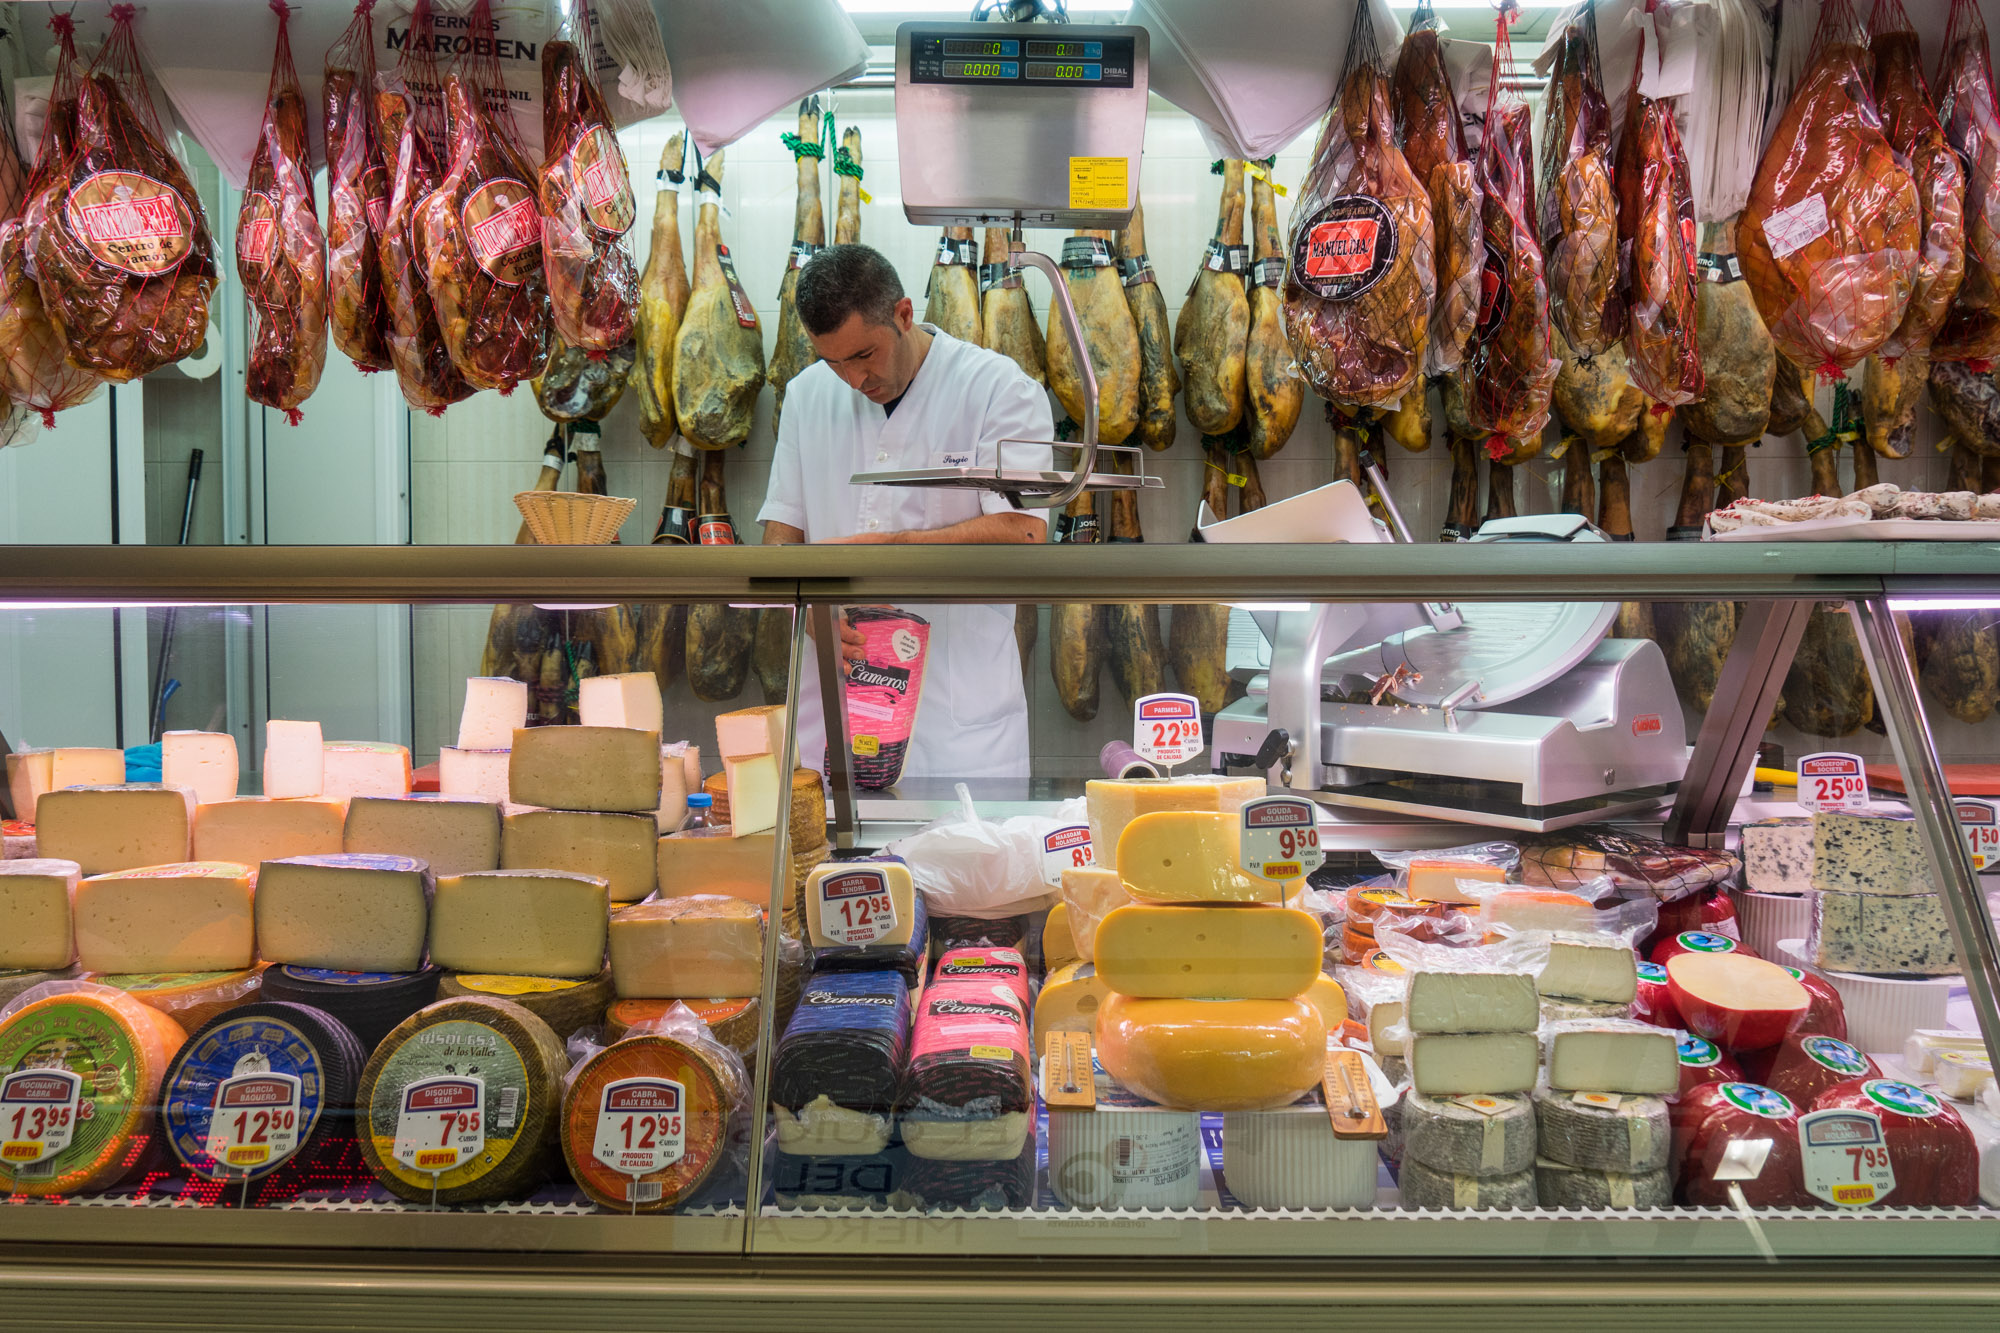 Meat and Cheese Girona Mercat de Lleo